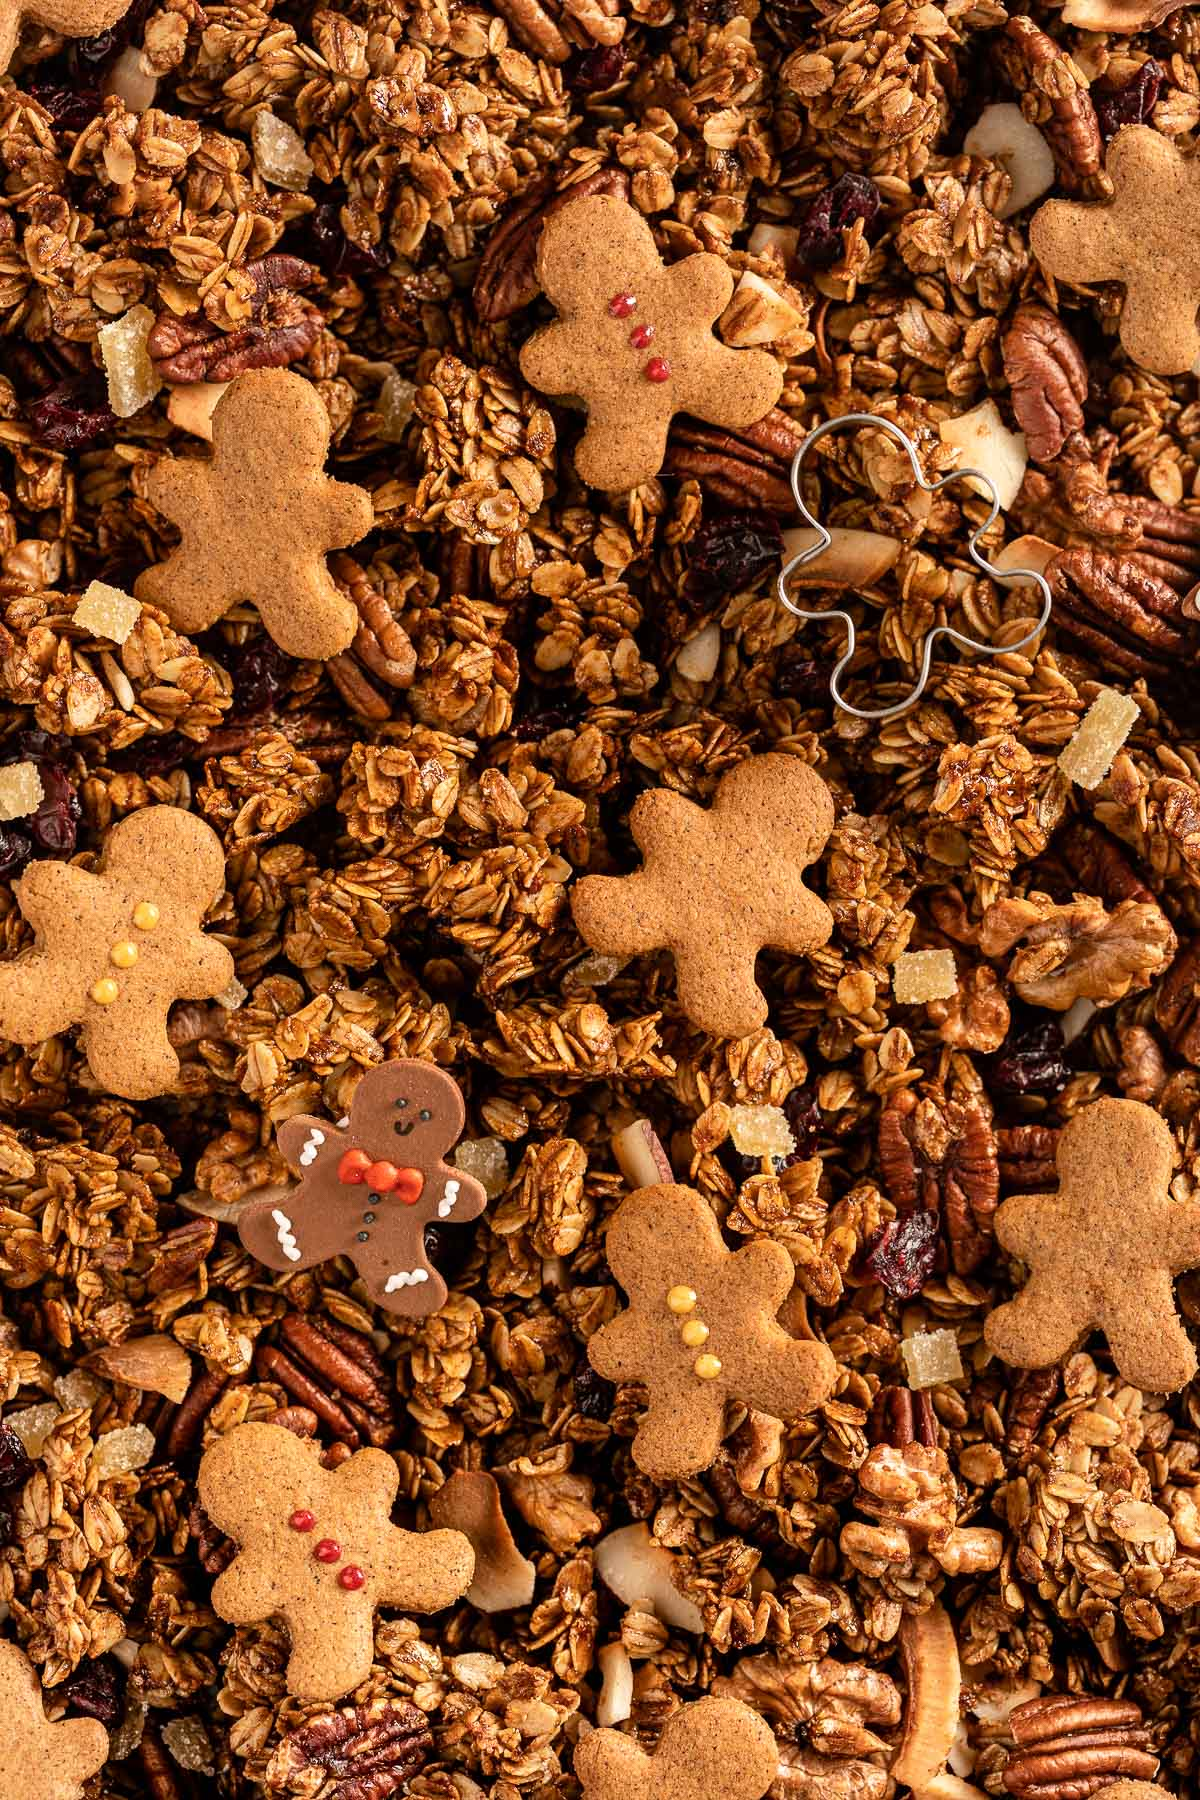 Ricetta granola pan di zenzero idea regalo di Natale vegan Gingerbread Granola Crispy perfectly sweet and spiced perfect for holidays guests #glutenfree